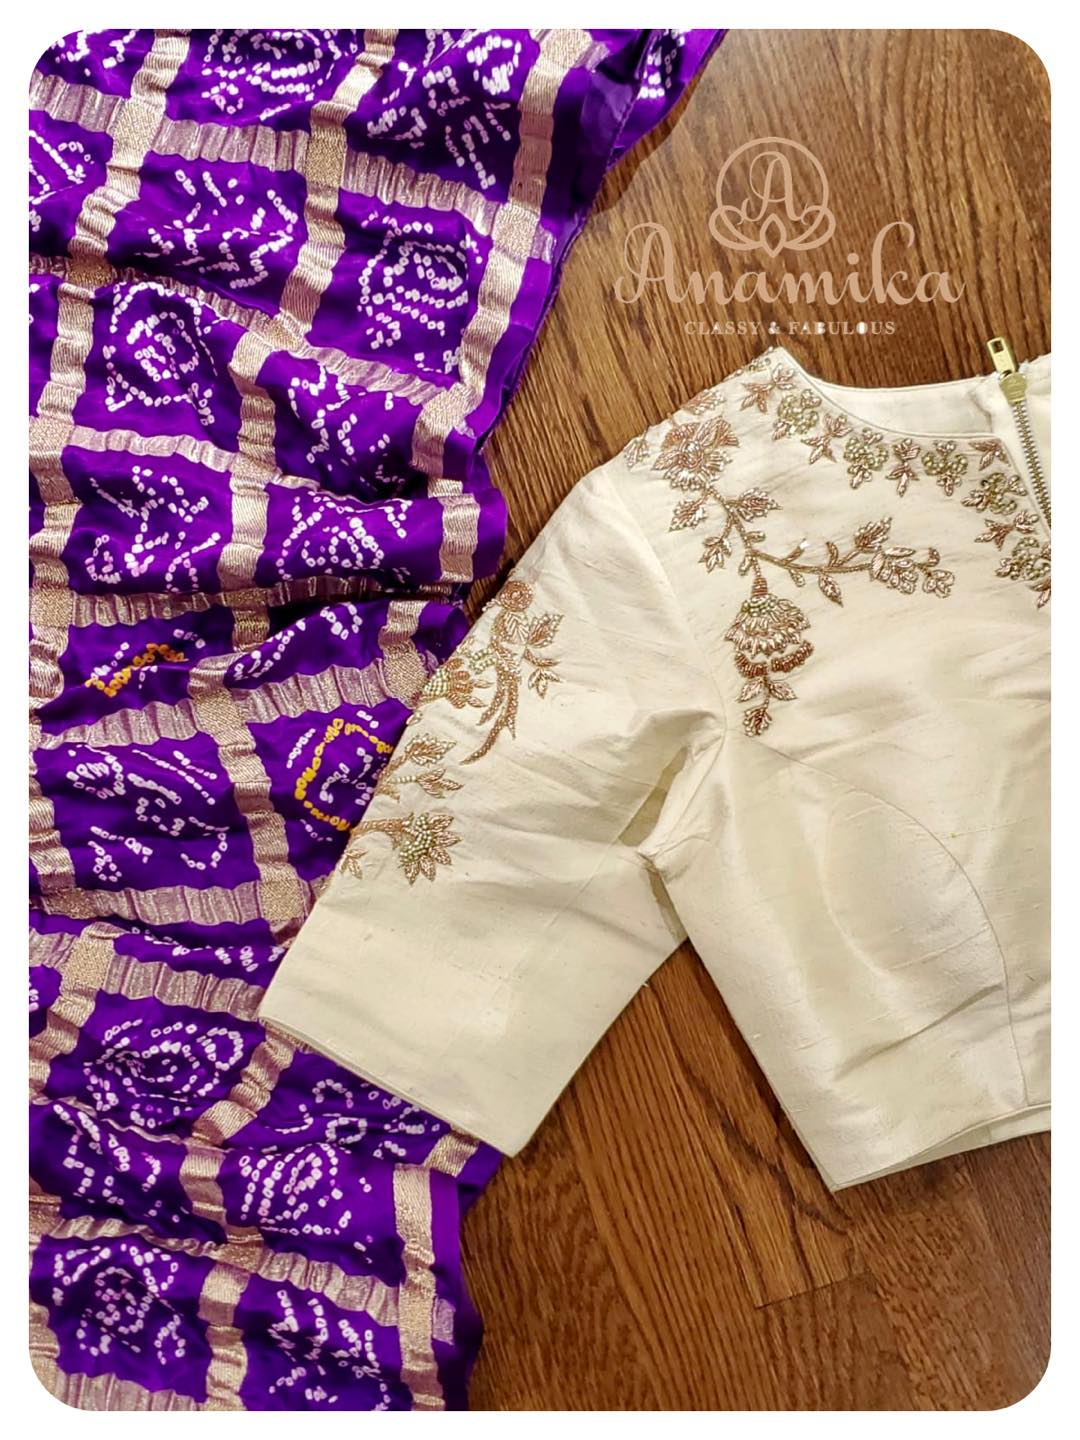 Bandini Gharchola - The most trending sarees in the recent days !!  Now available in 3 splendid colors - paired with beautiful contrast blouses ! DM 360-545-3636 for inquiries  2021-06-15